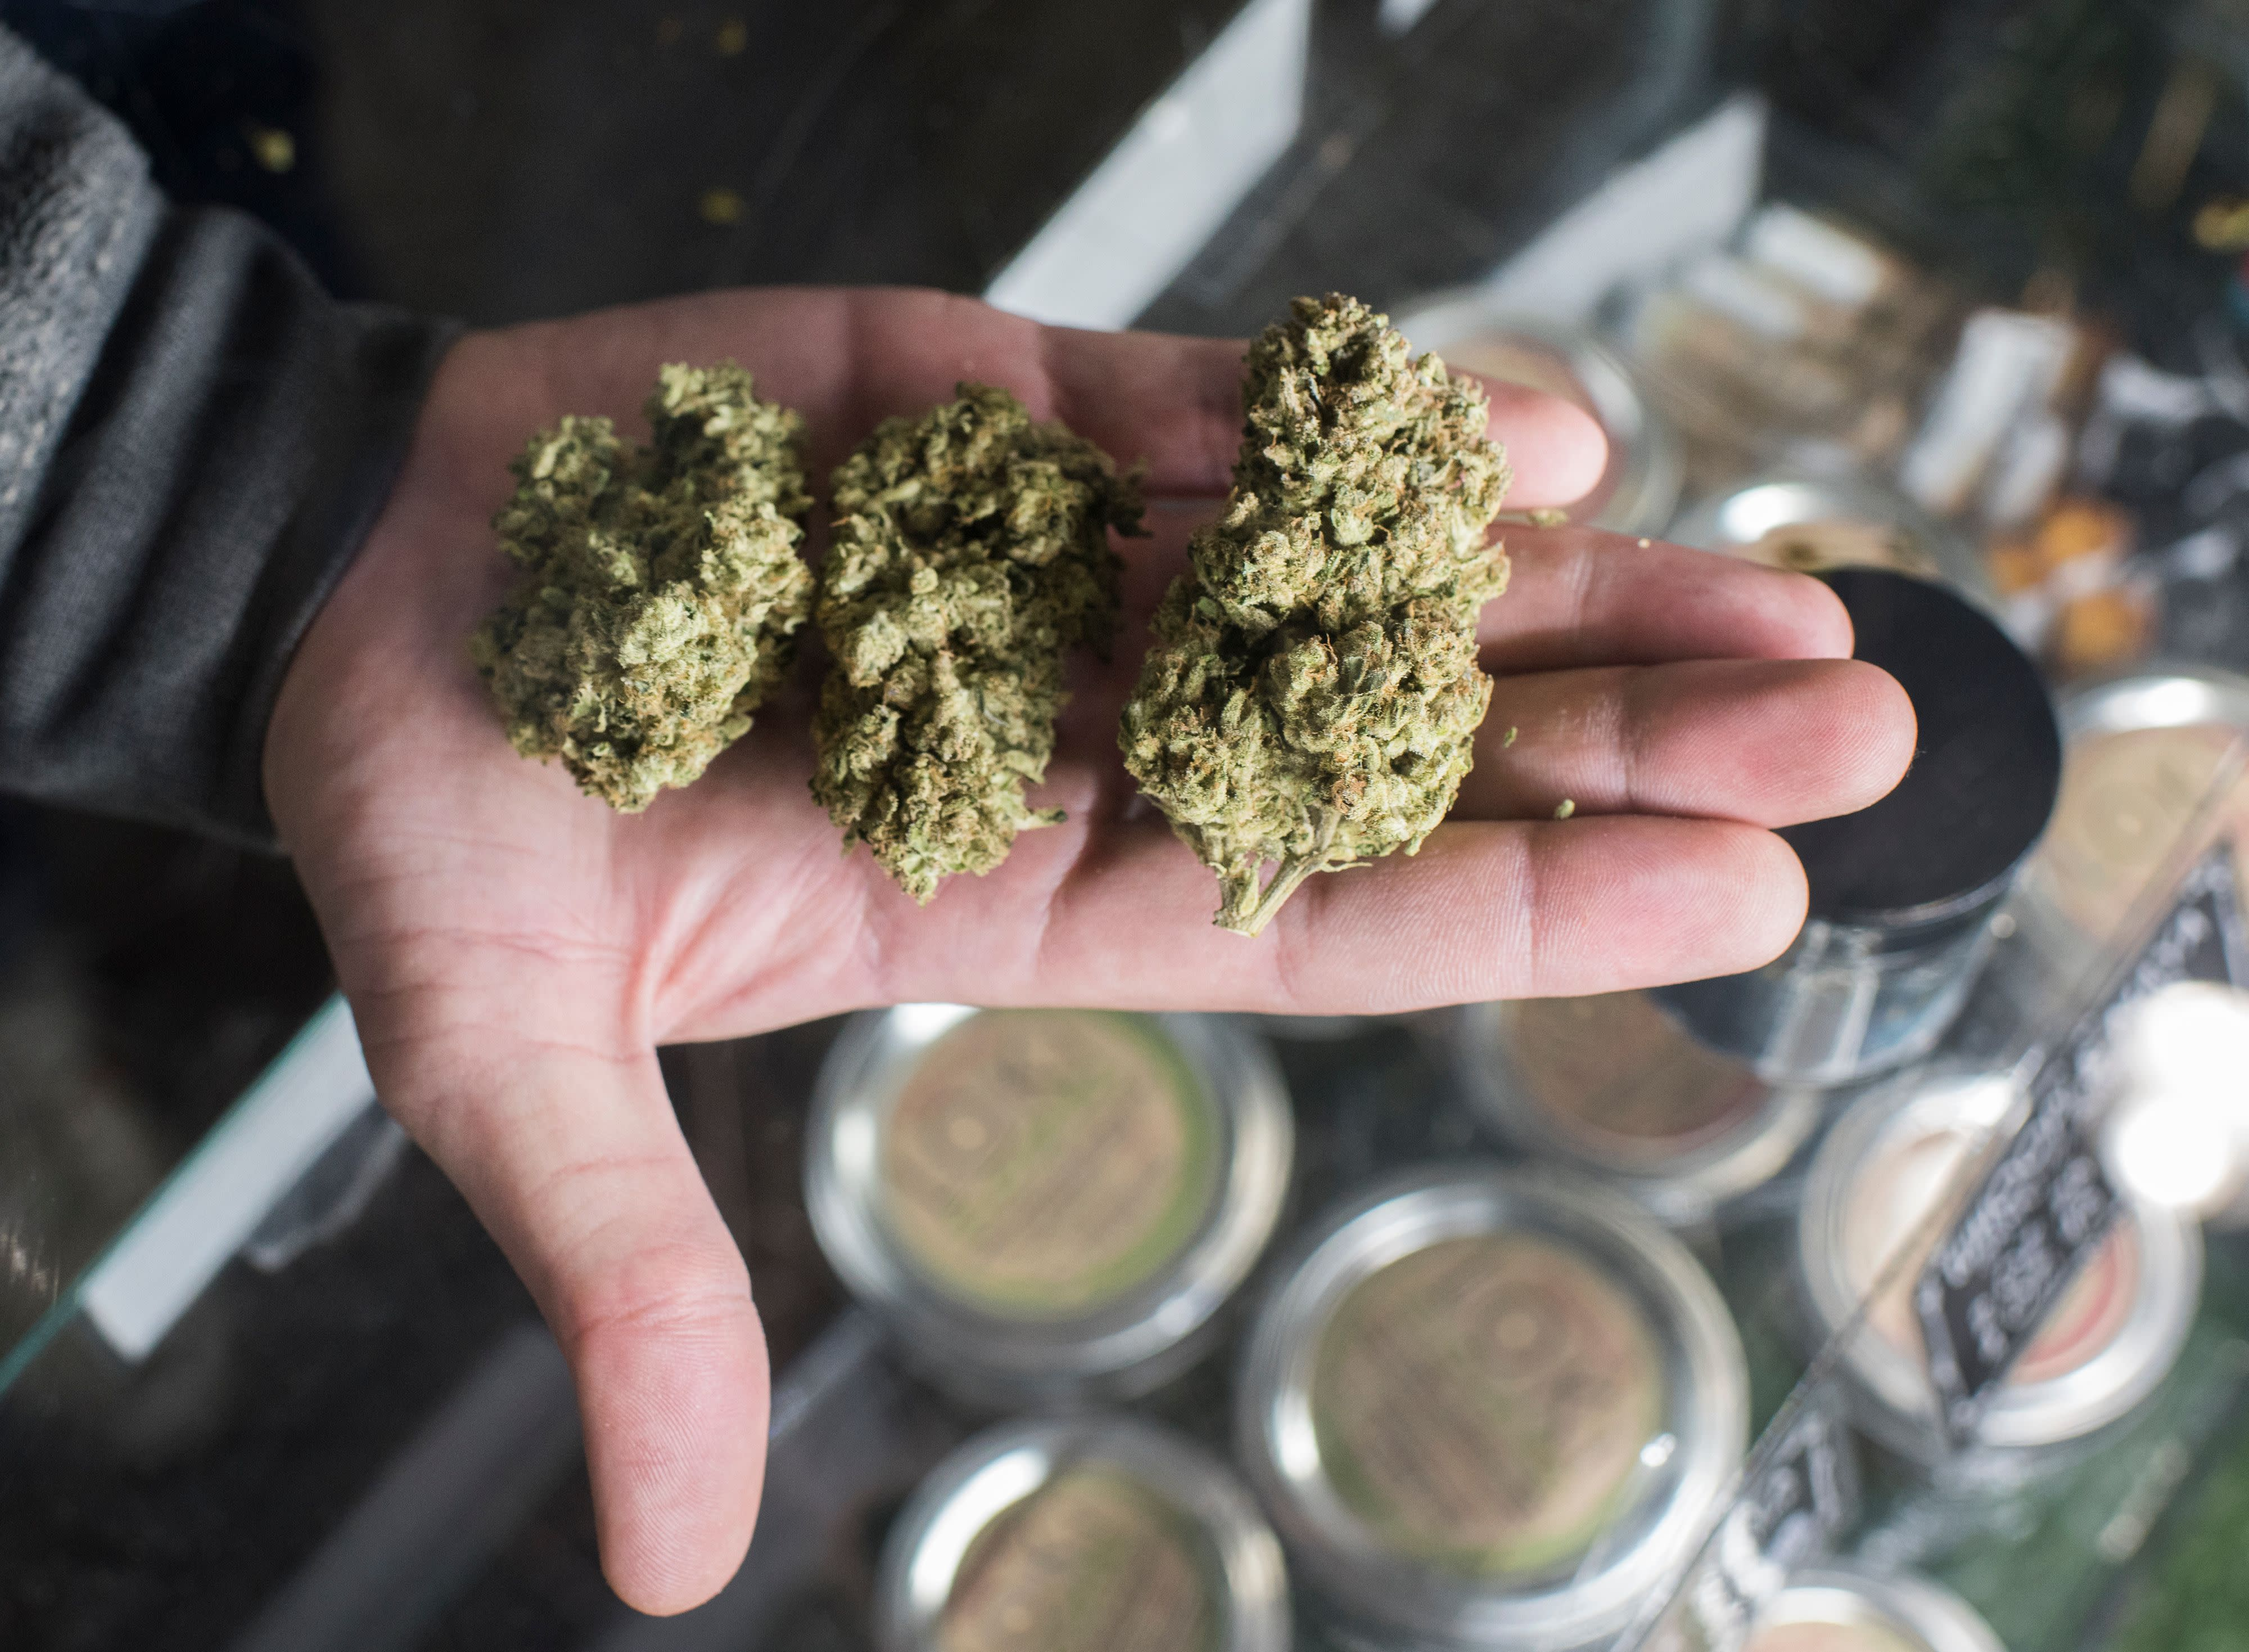 California Launches First Legal Retail Sales of Marijuana